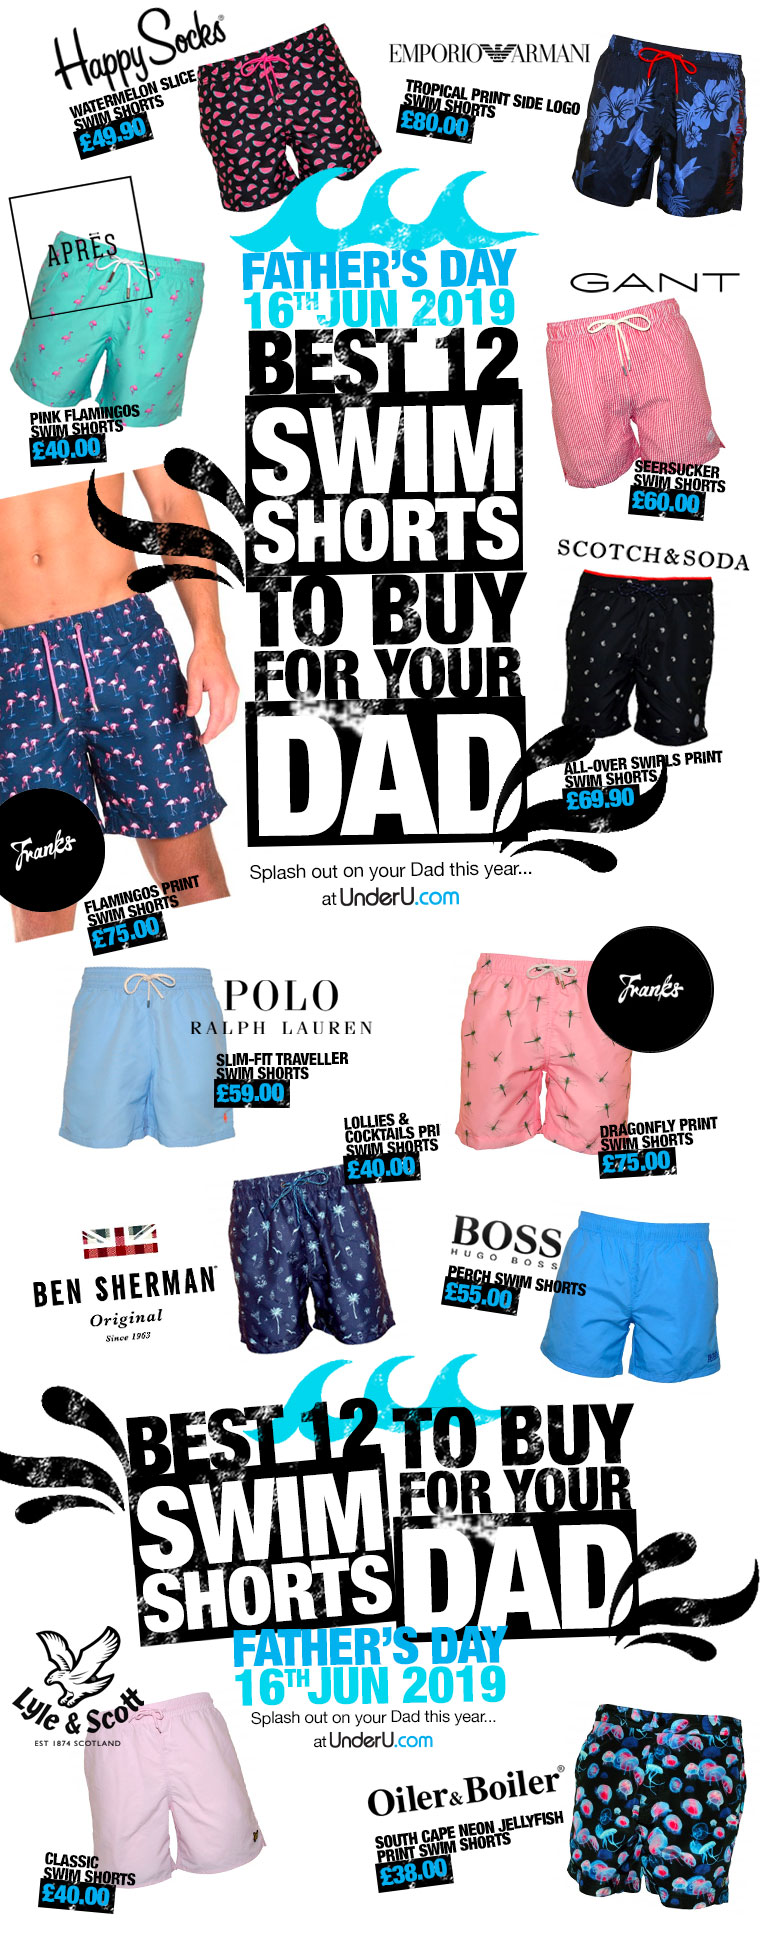 Father's Day 2019 swim shorts to buy for your Dad